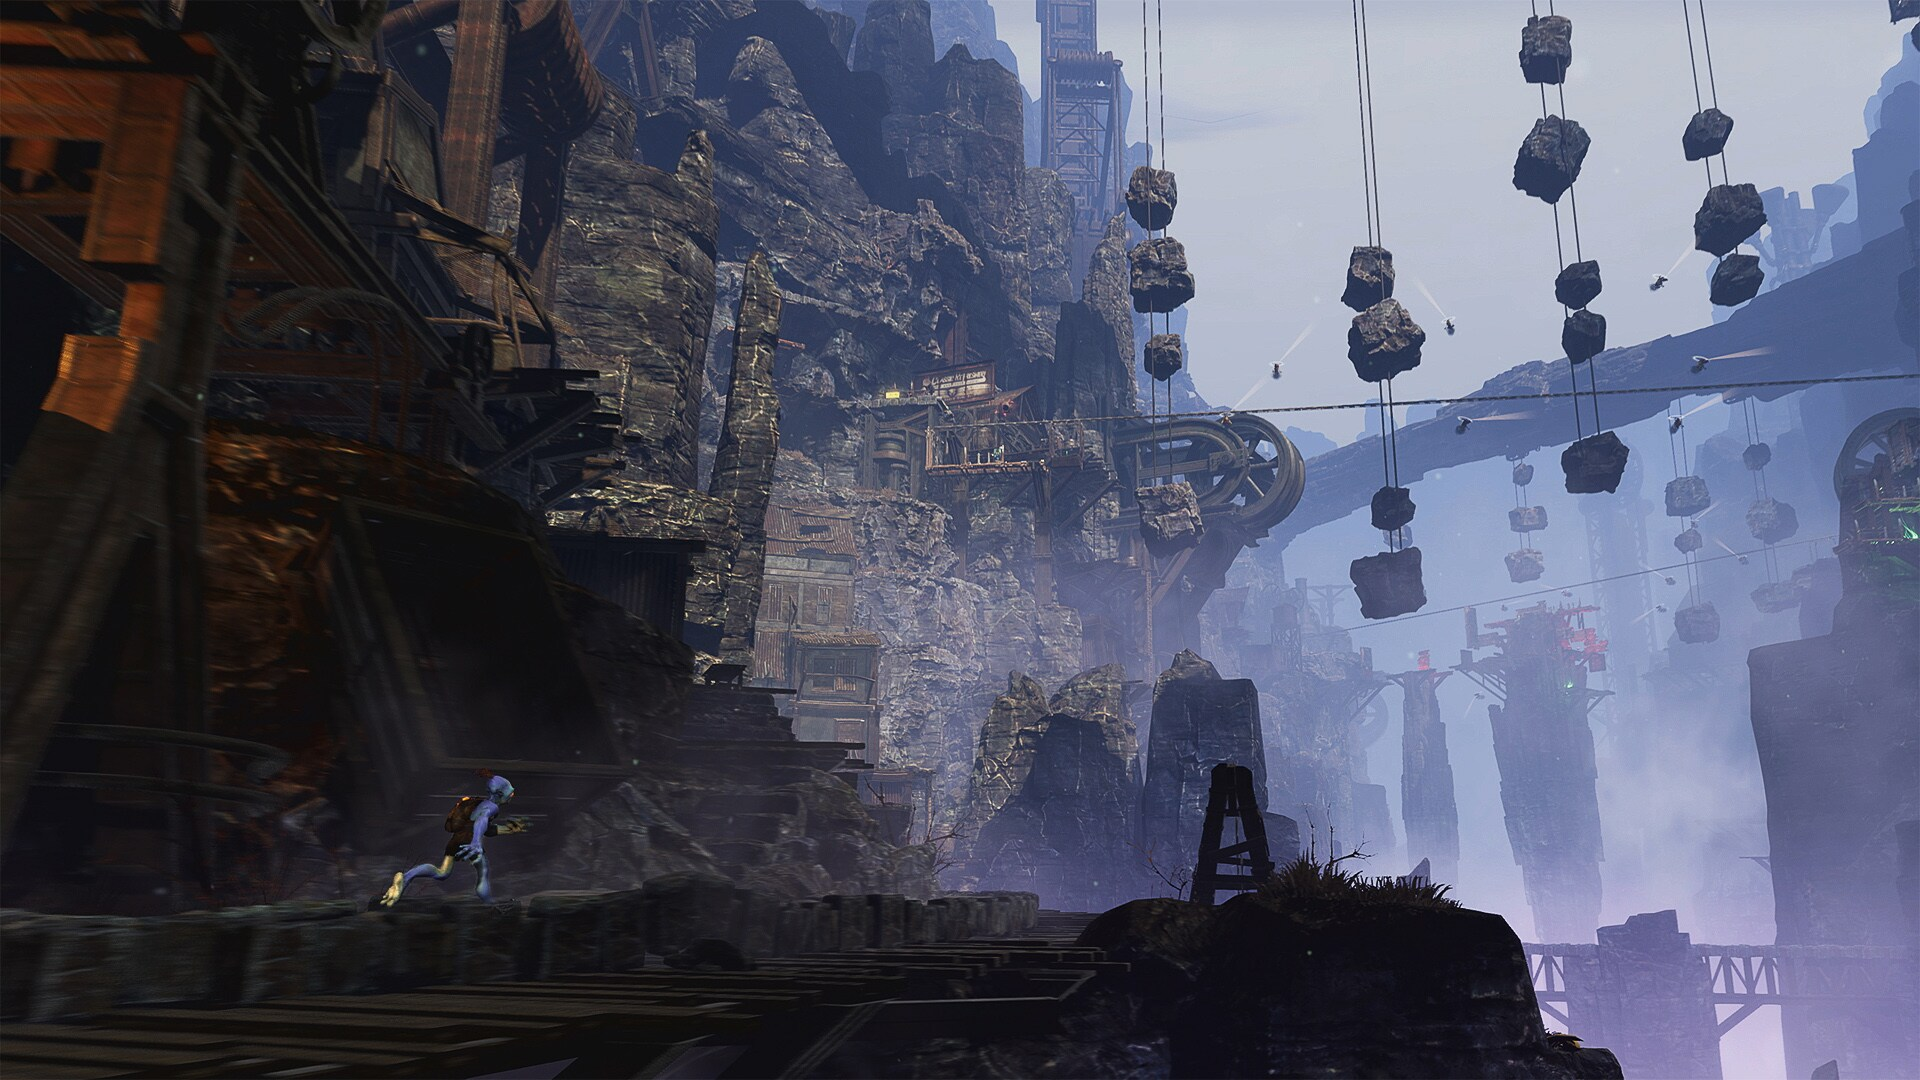 Taken from Oddworld Soulstrom game - Person running along a rocky mountainous type area. ahead of them are large stone bridges and large boxes hanging from wires